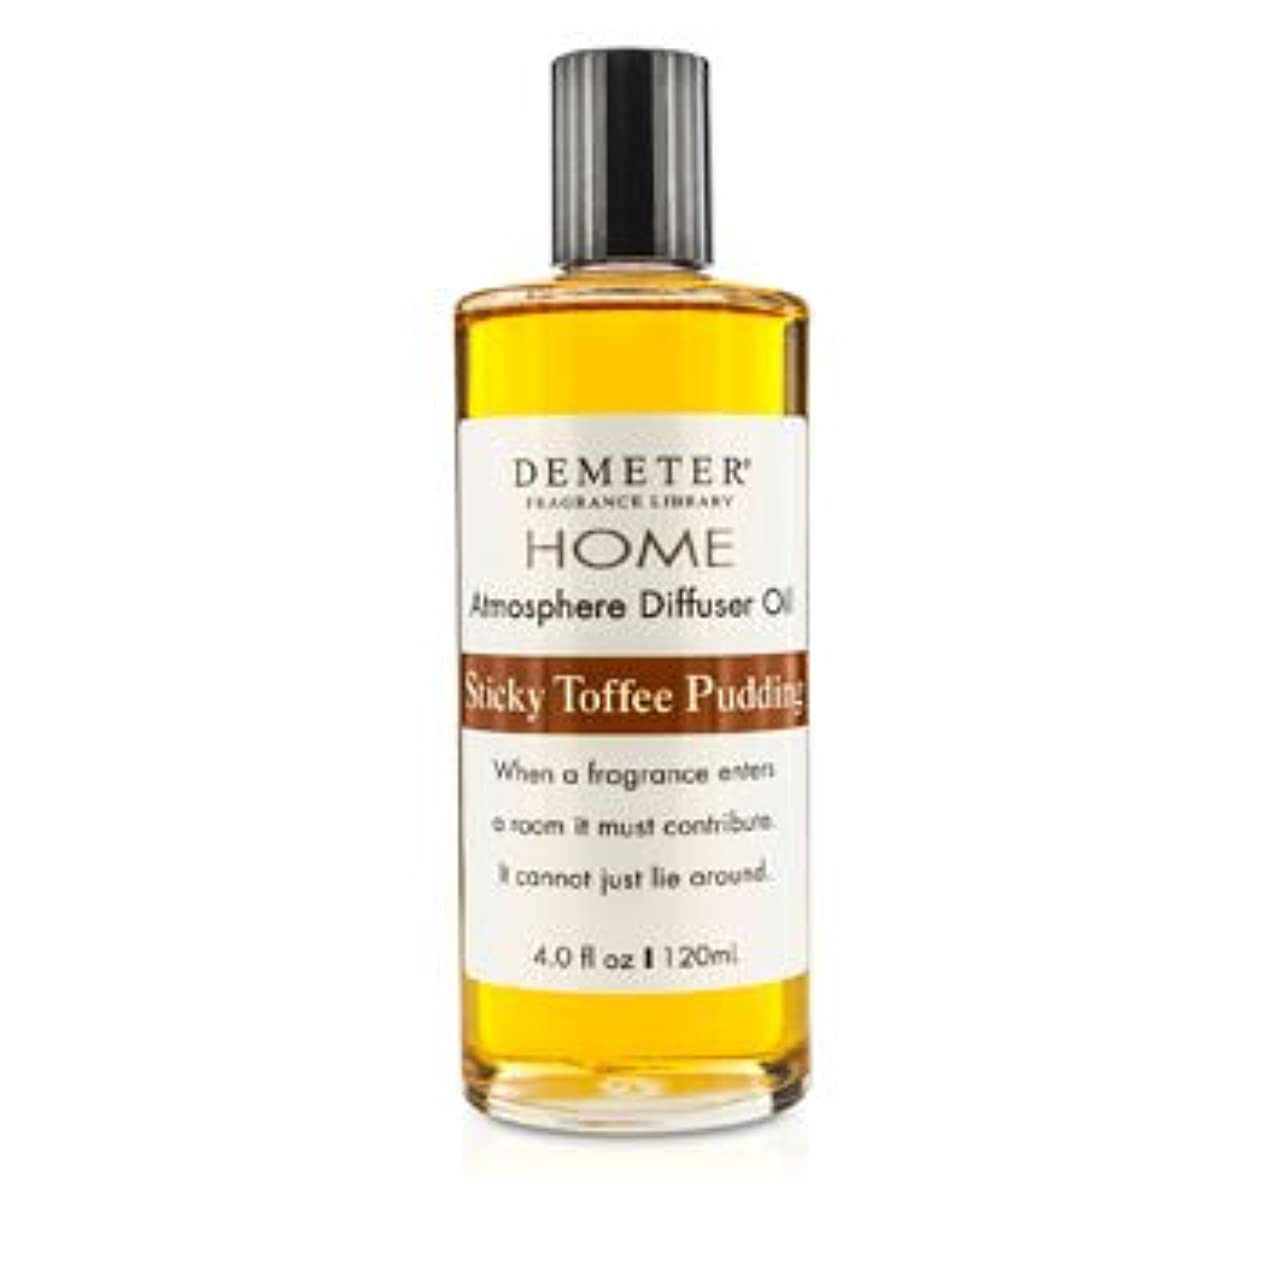 ストラップ急降下悪用[Demeter] Atmosphere Diffuser Oil - Sticky Toffee Pudding 120ml/4oz